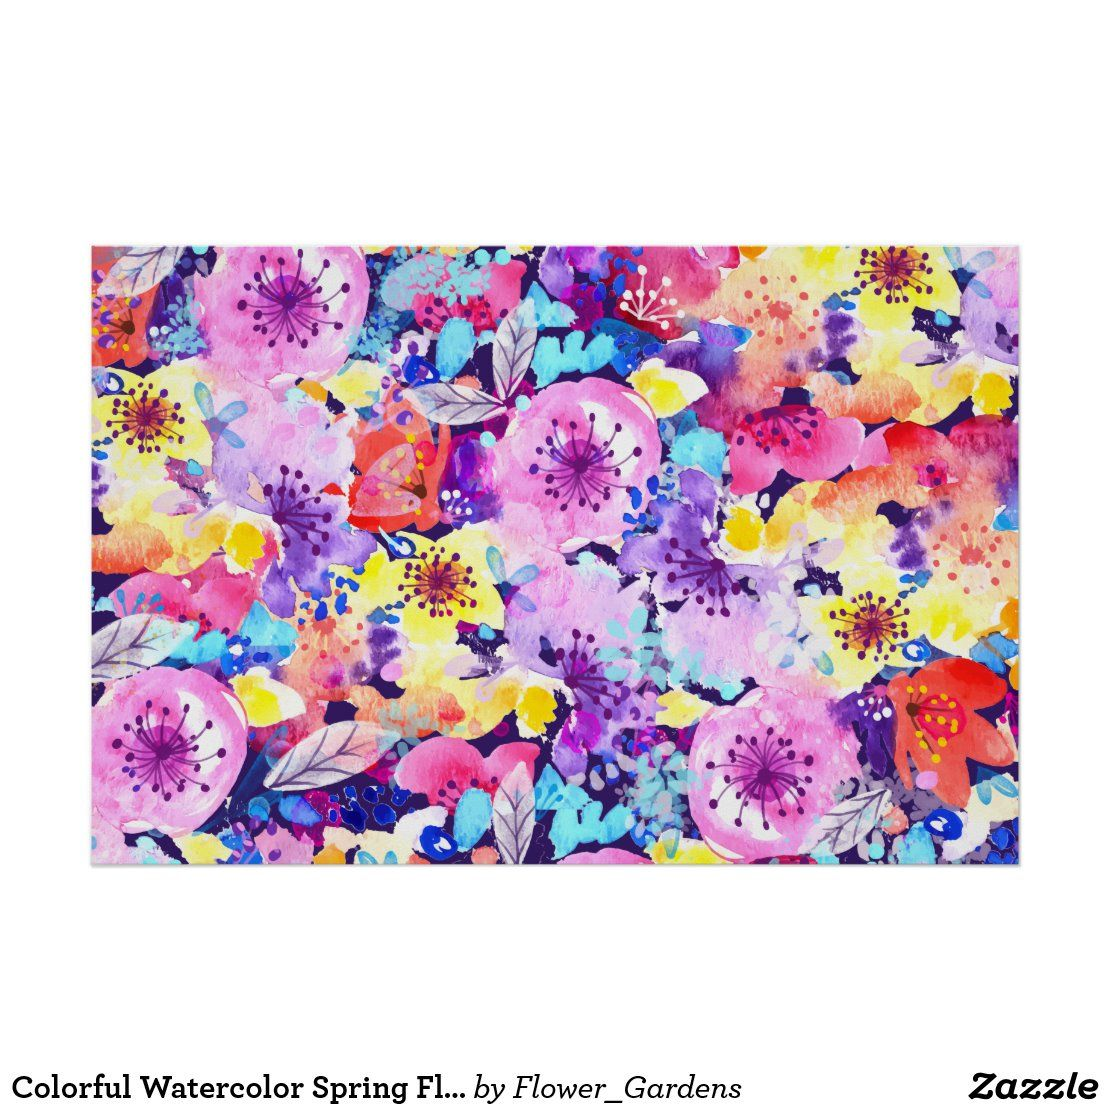 Feel the romance with this colorful watercolor spring flowers pattern. With this floral design, you will feel yourself cute, romantic and in the garden. #zazzle #watercolor #floral #flower #flowers #nature #romantic #spring #bridal  #artprint #gifts #gift #giftideas #design #unique #custom #home #homedecor #decoration #wallart #pillow #curtain #poster #doormat #bathmat #pouf #clock #bedroom #bathroom #livingroom #blanket #duvet